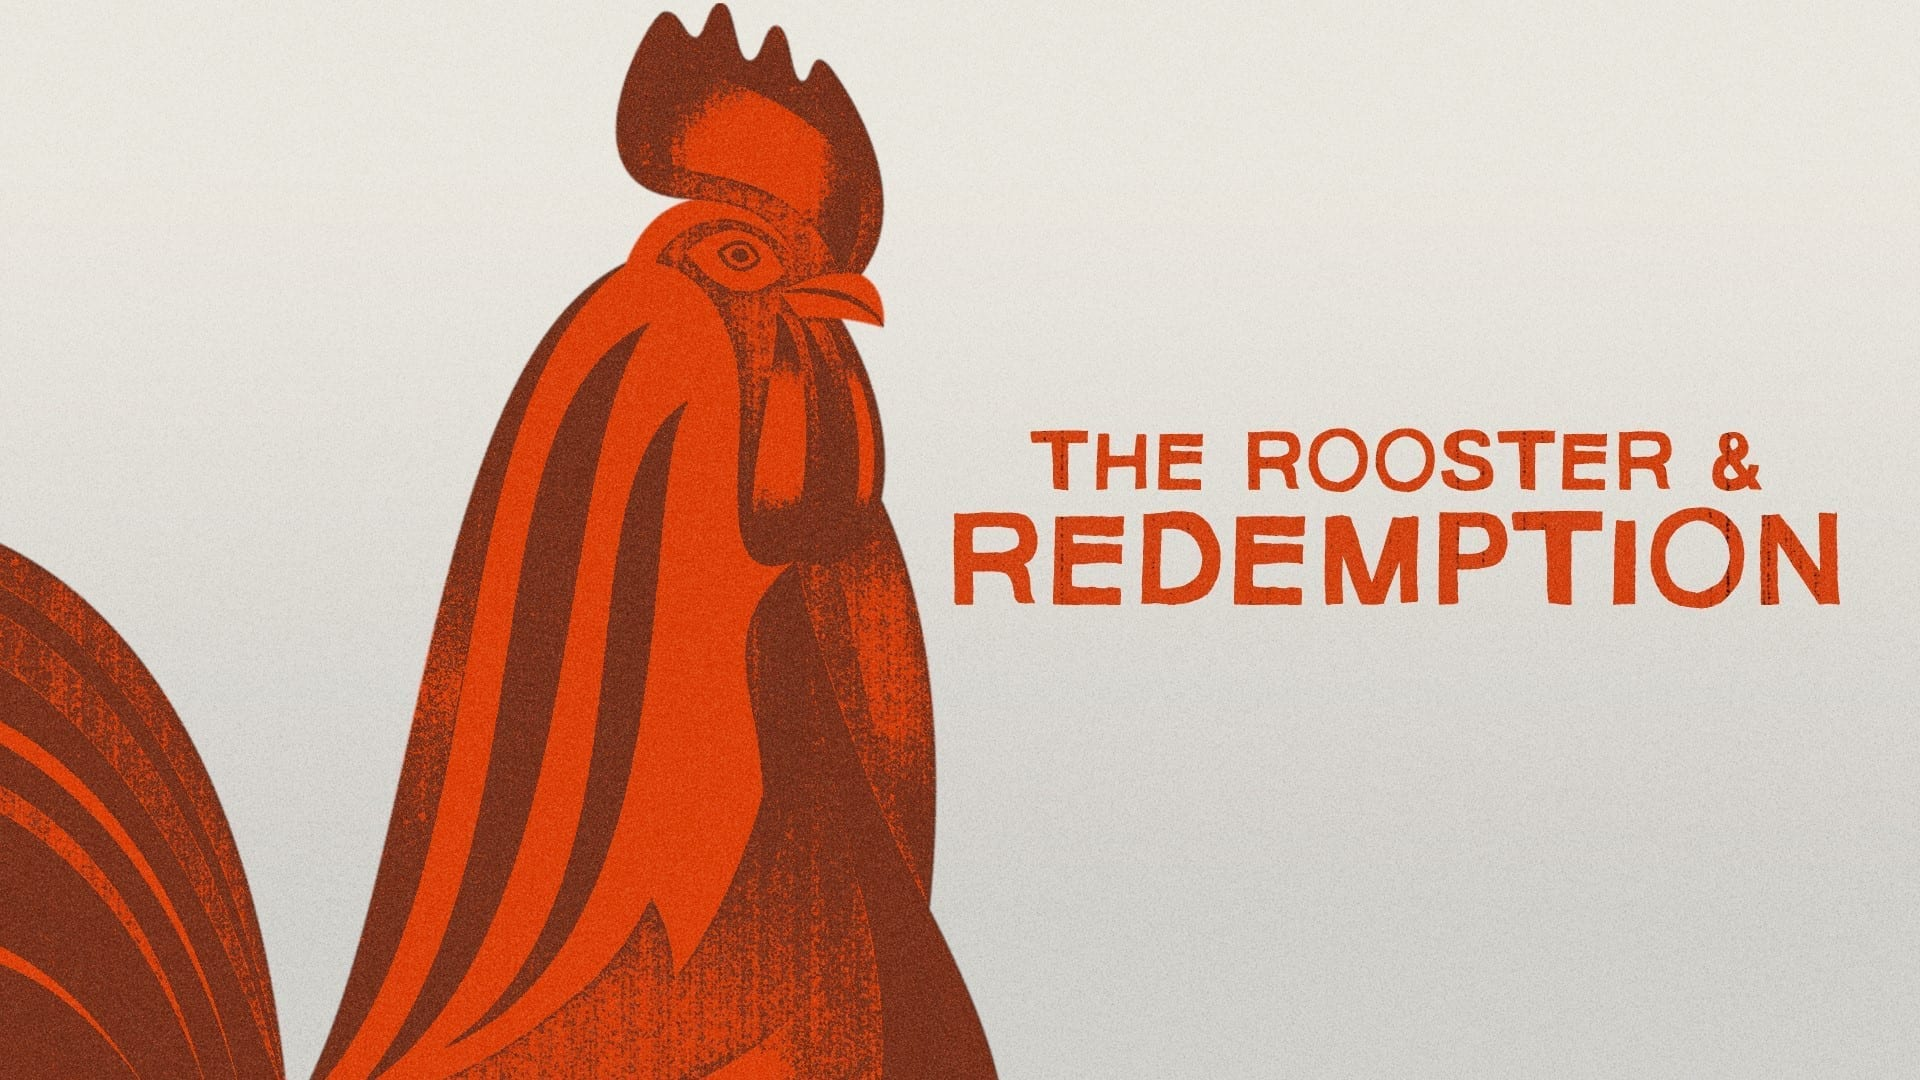 The Rooster and Redemption